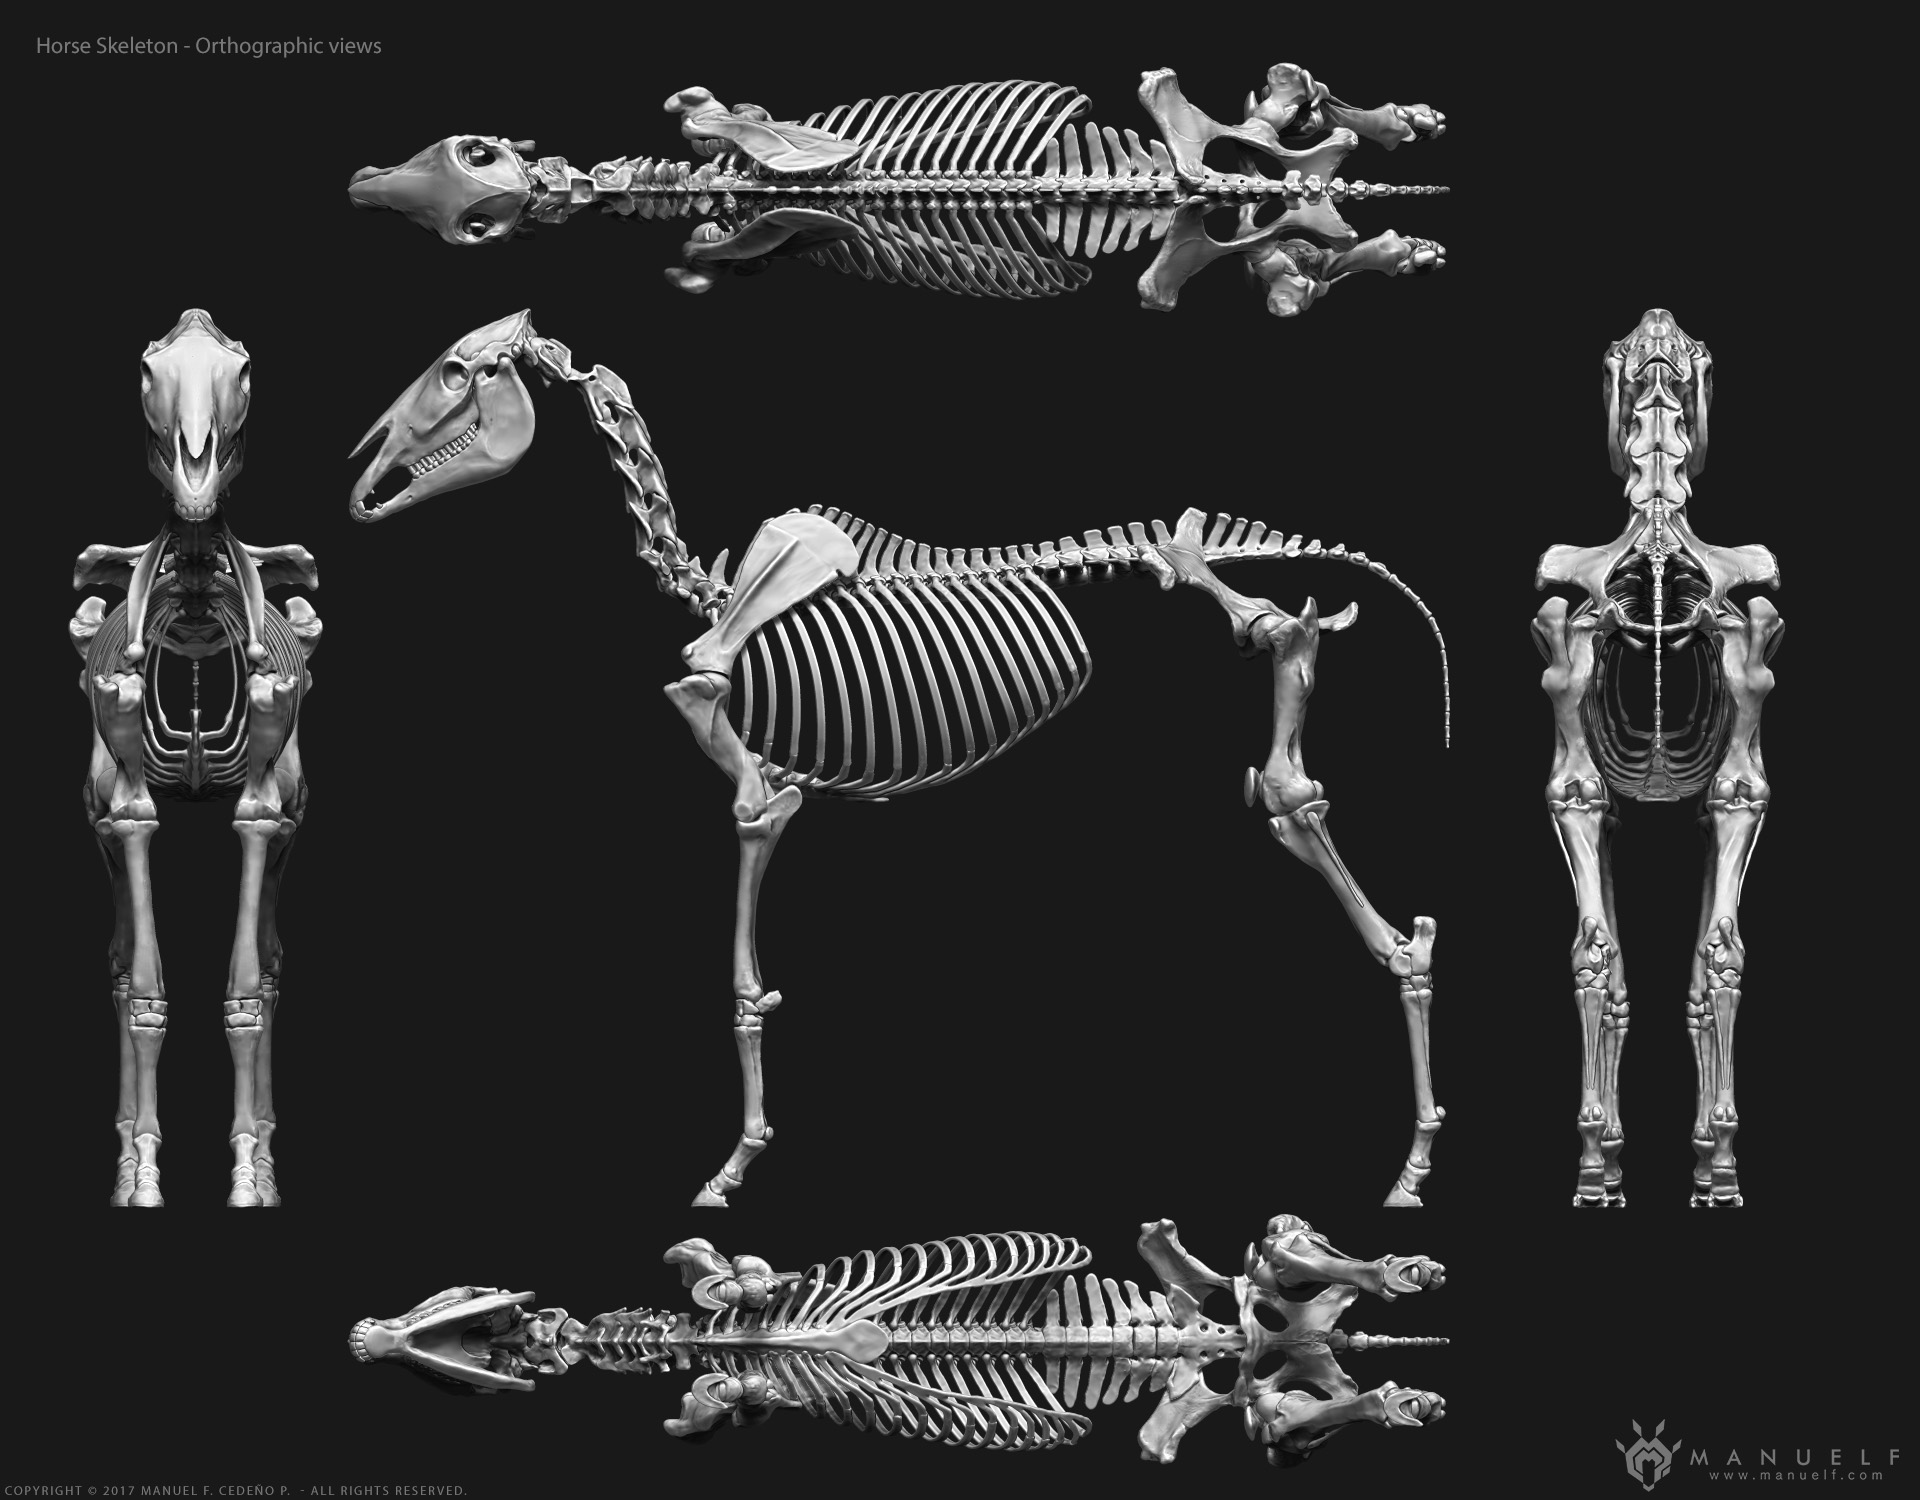 manuelf3d_Horse_Skeleton_3d_OrthographicViews.jpg